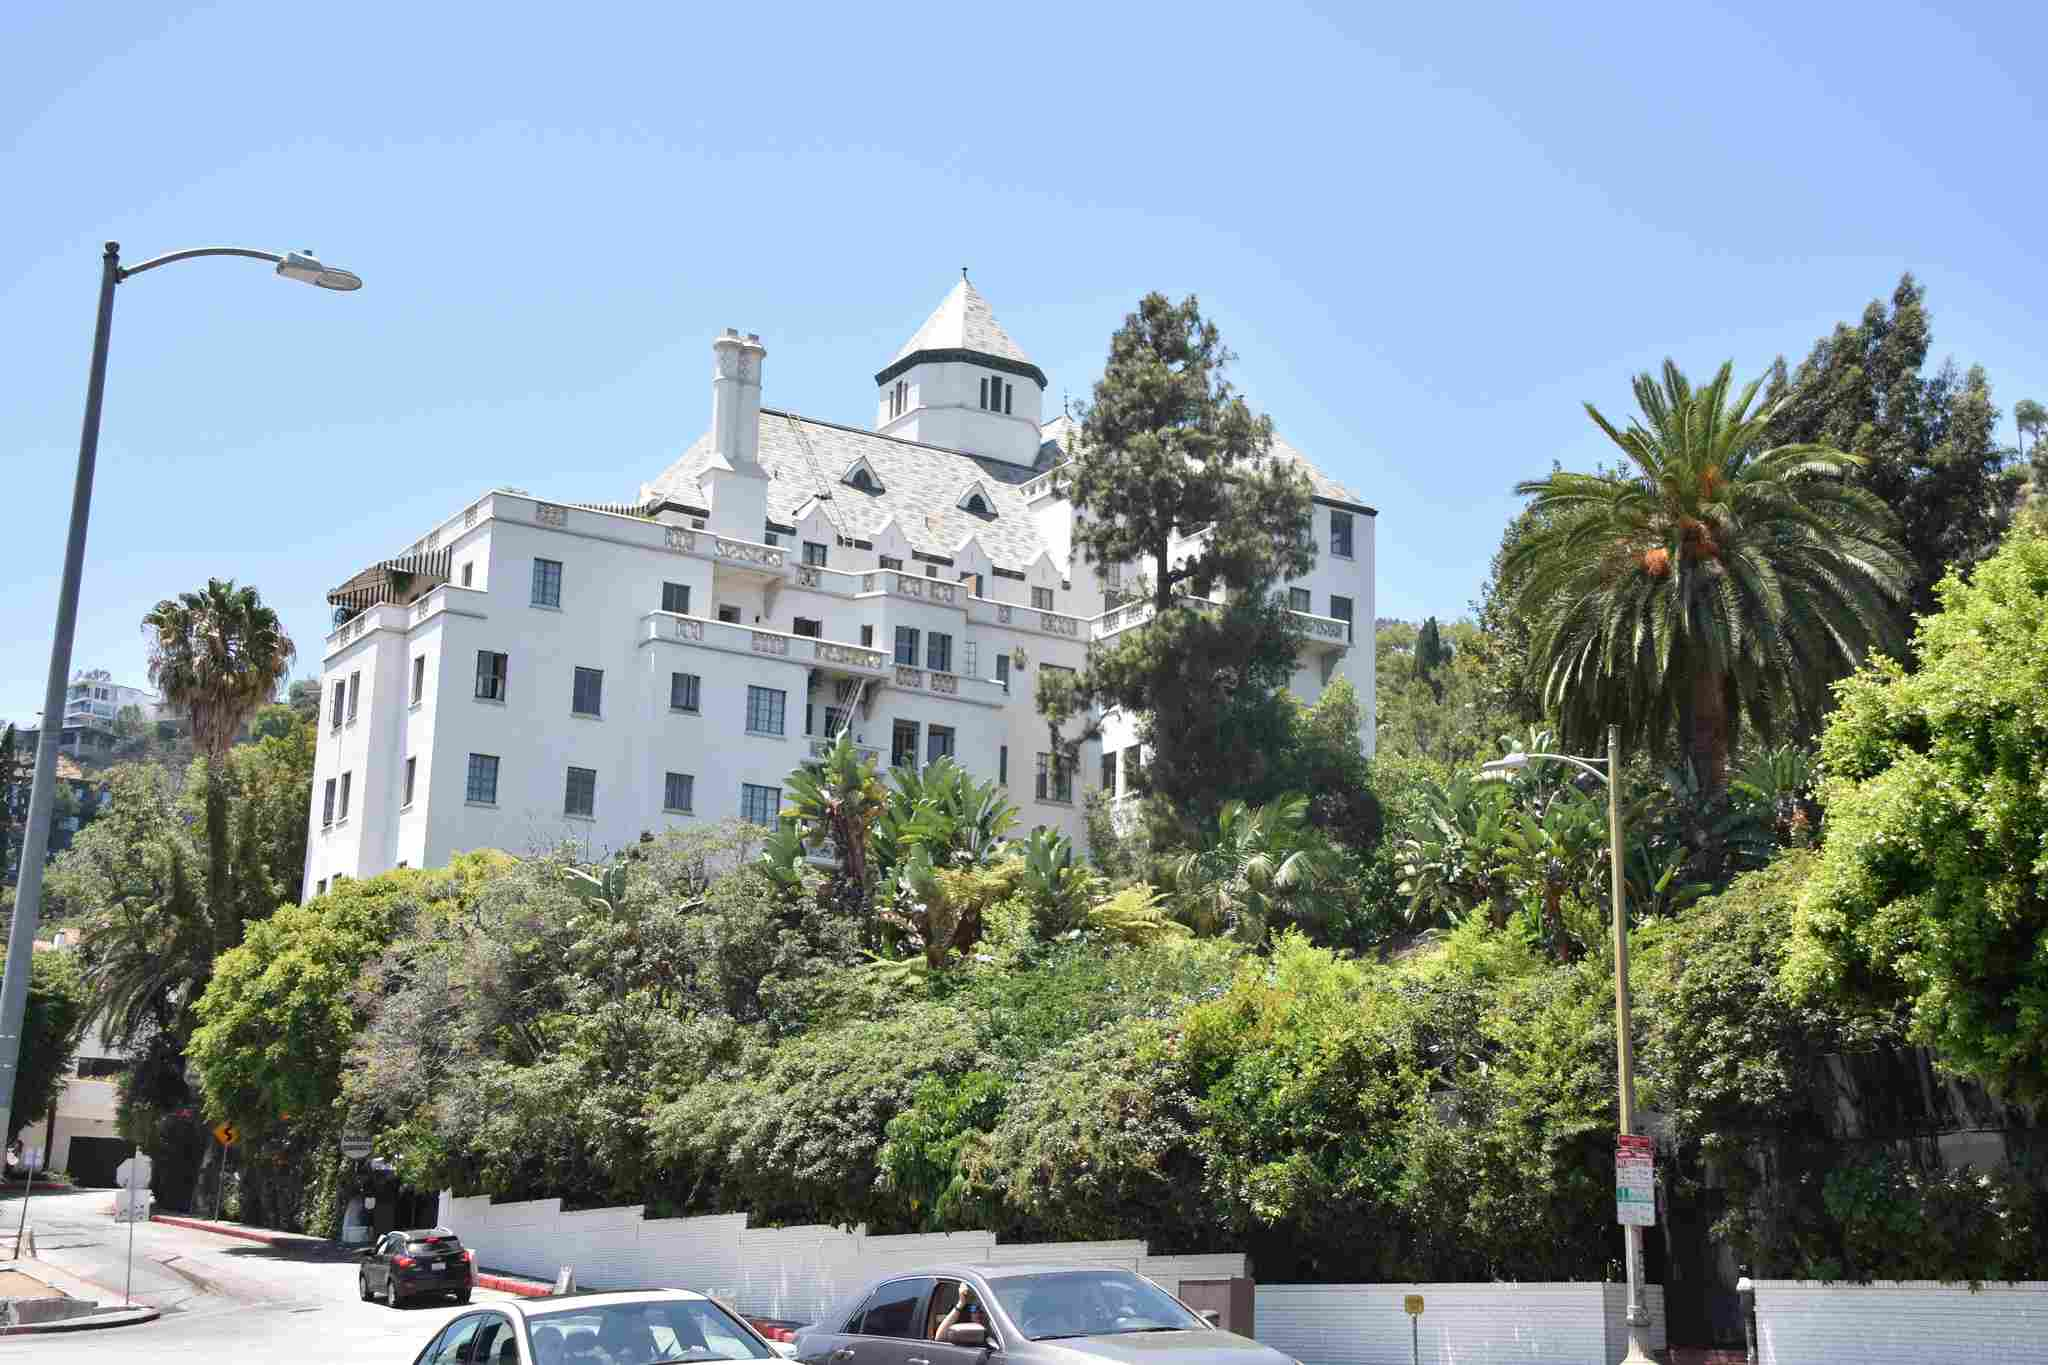 Chateau Marmont in Hollywood, Los Angeles